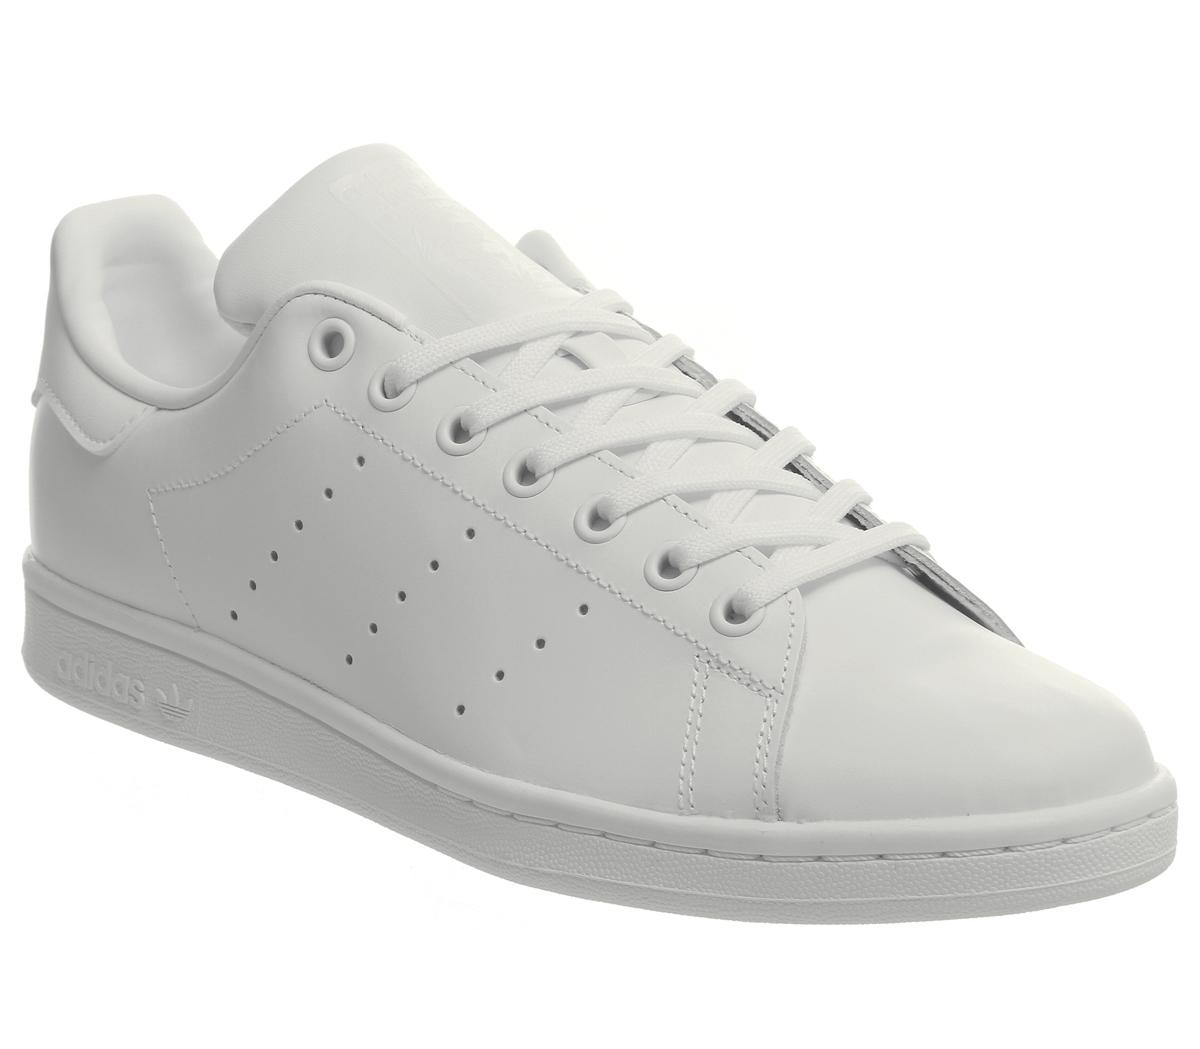 adidas originals stan smith white and black trainers